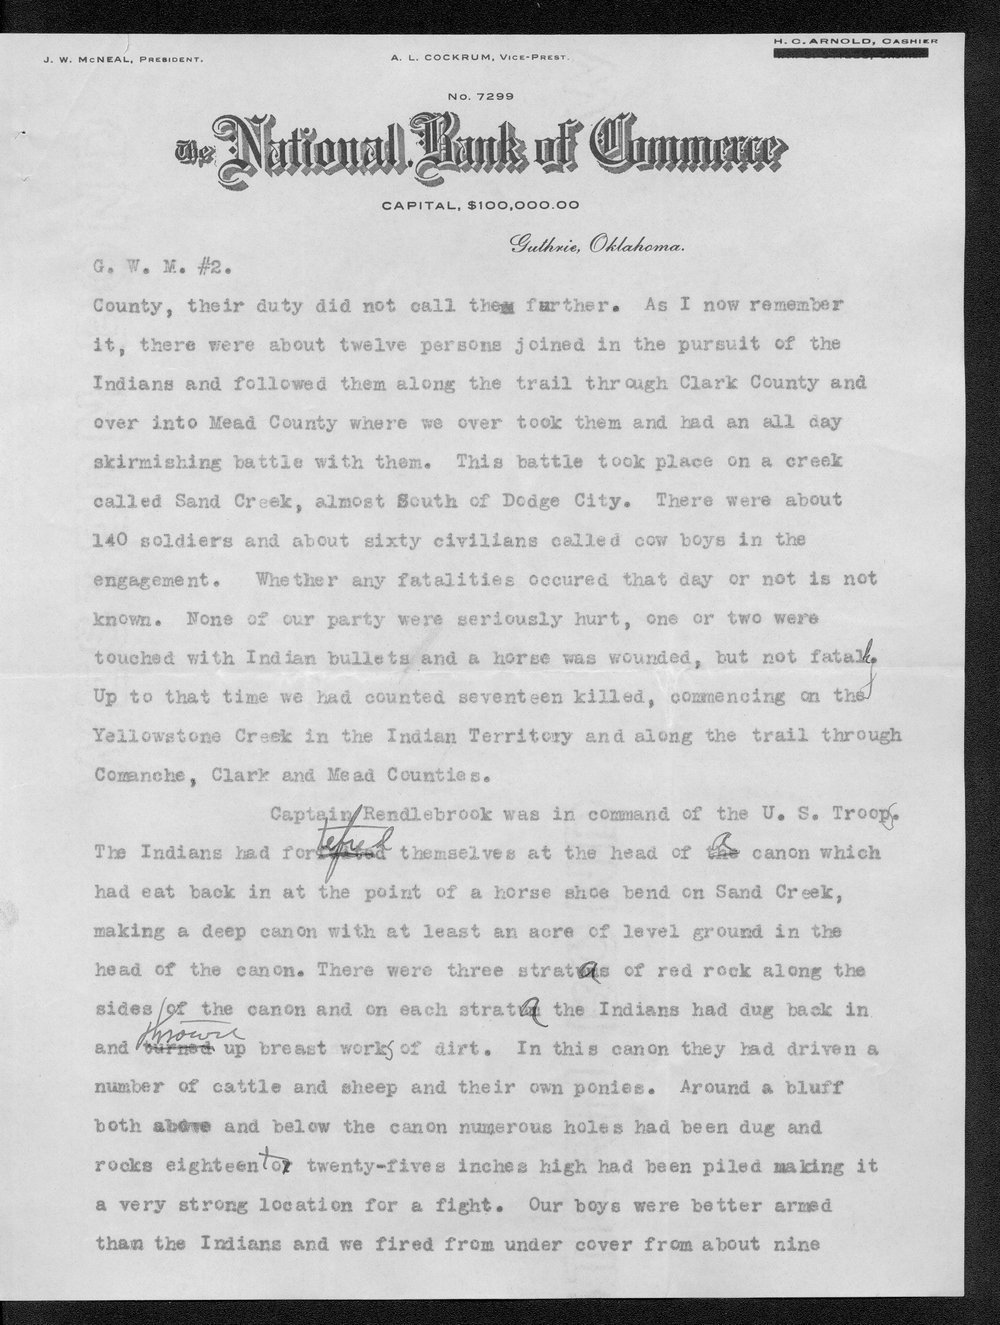 George Martin correspondence on the 1878 route of the Cheyenne Indians through Kansas - 6